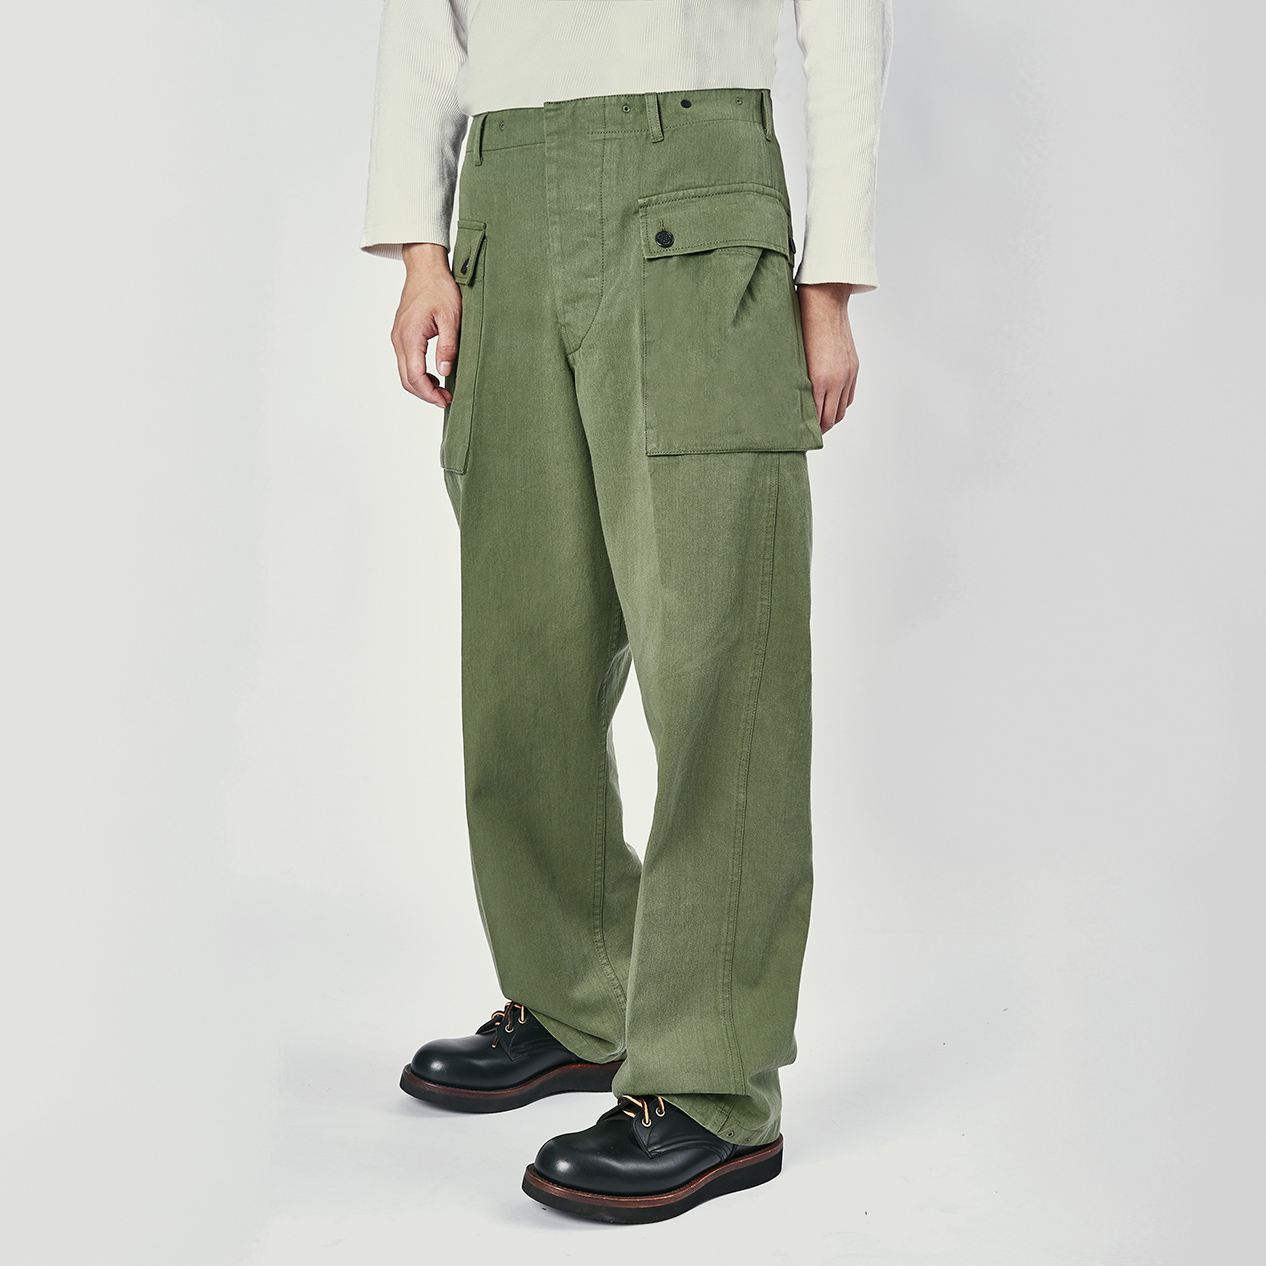 Sburla / senbailai imported fabric from Japan! Mens military pants with retro p44 three-dimensional storage pocket